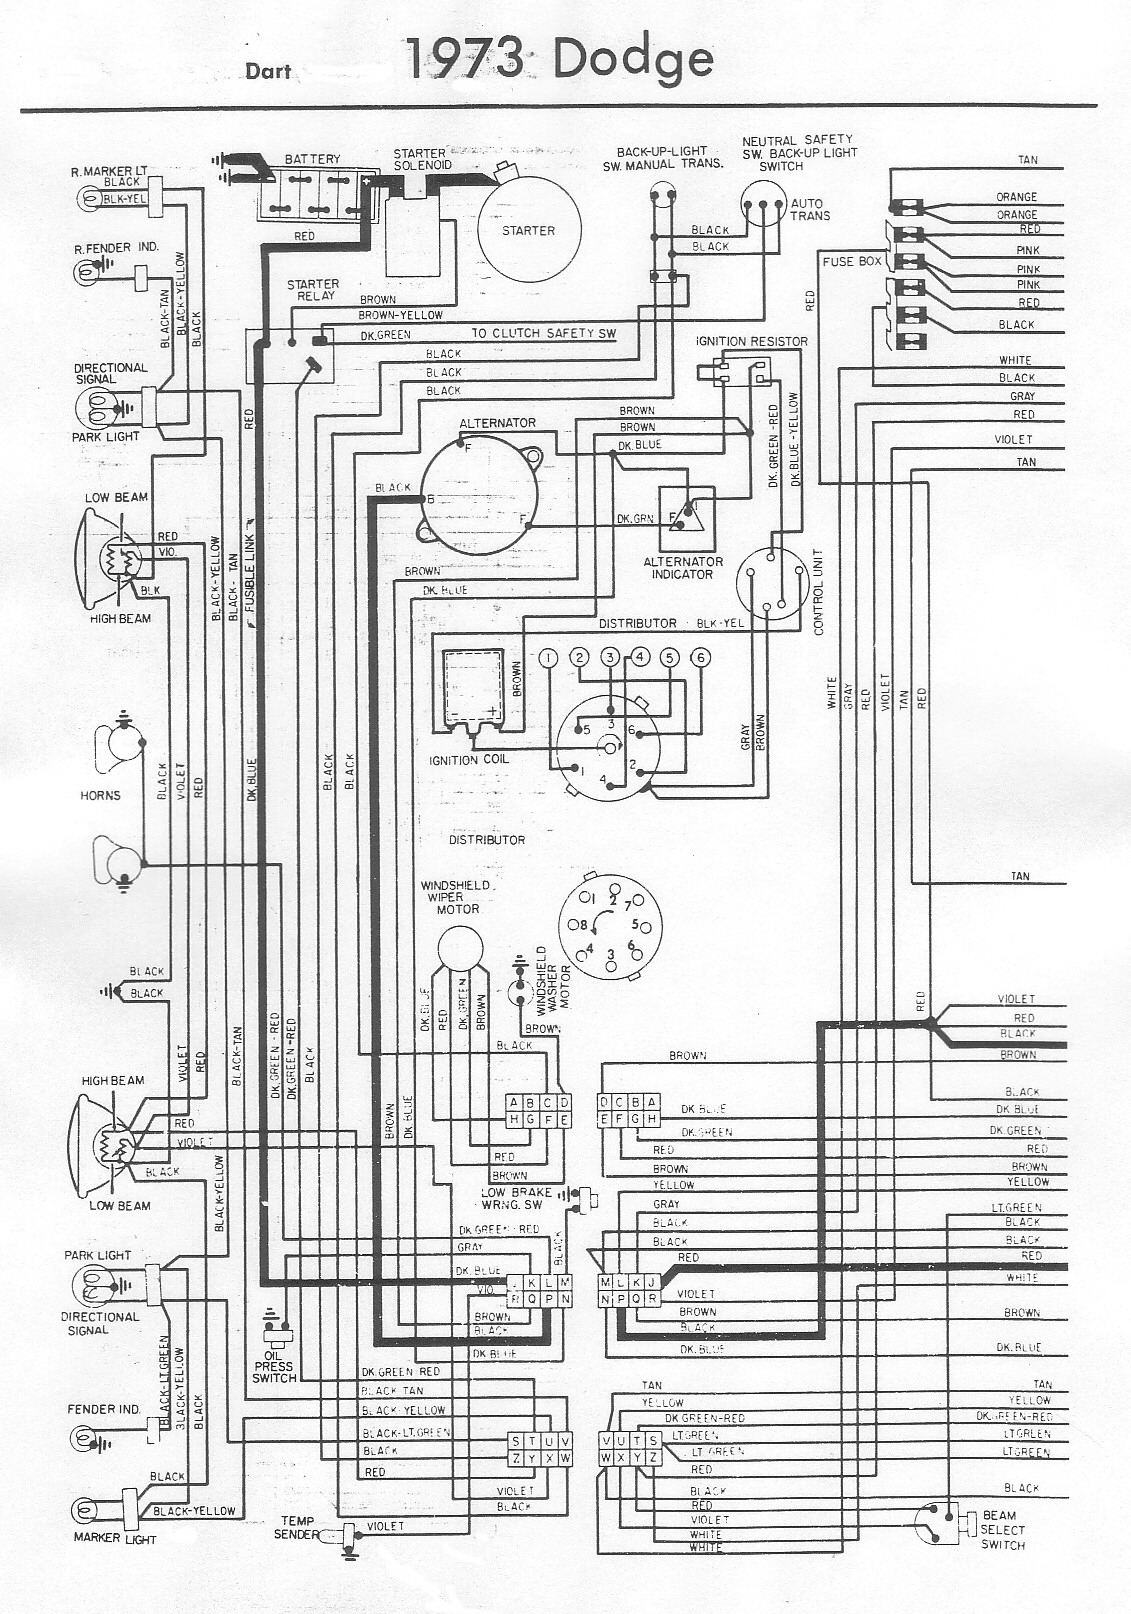 small resolution of diagram further 1973 dodge charger wiring diagram wiring harness73 dodge charger wiring diagram online wiring diagram